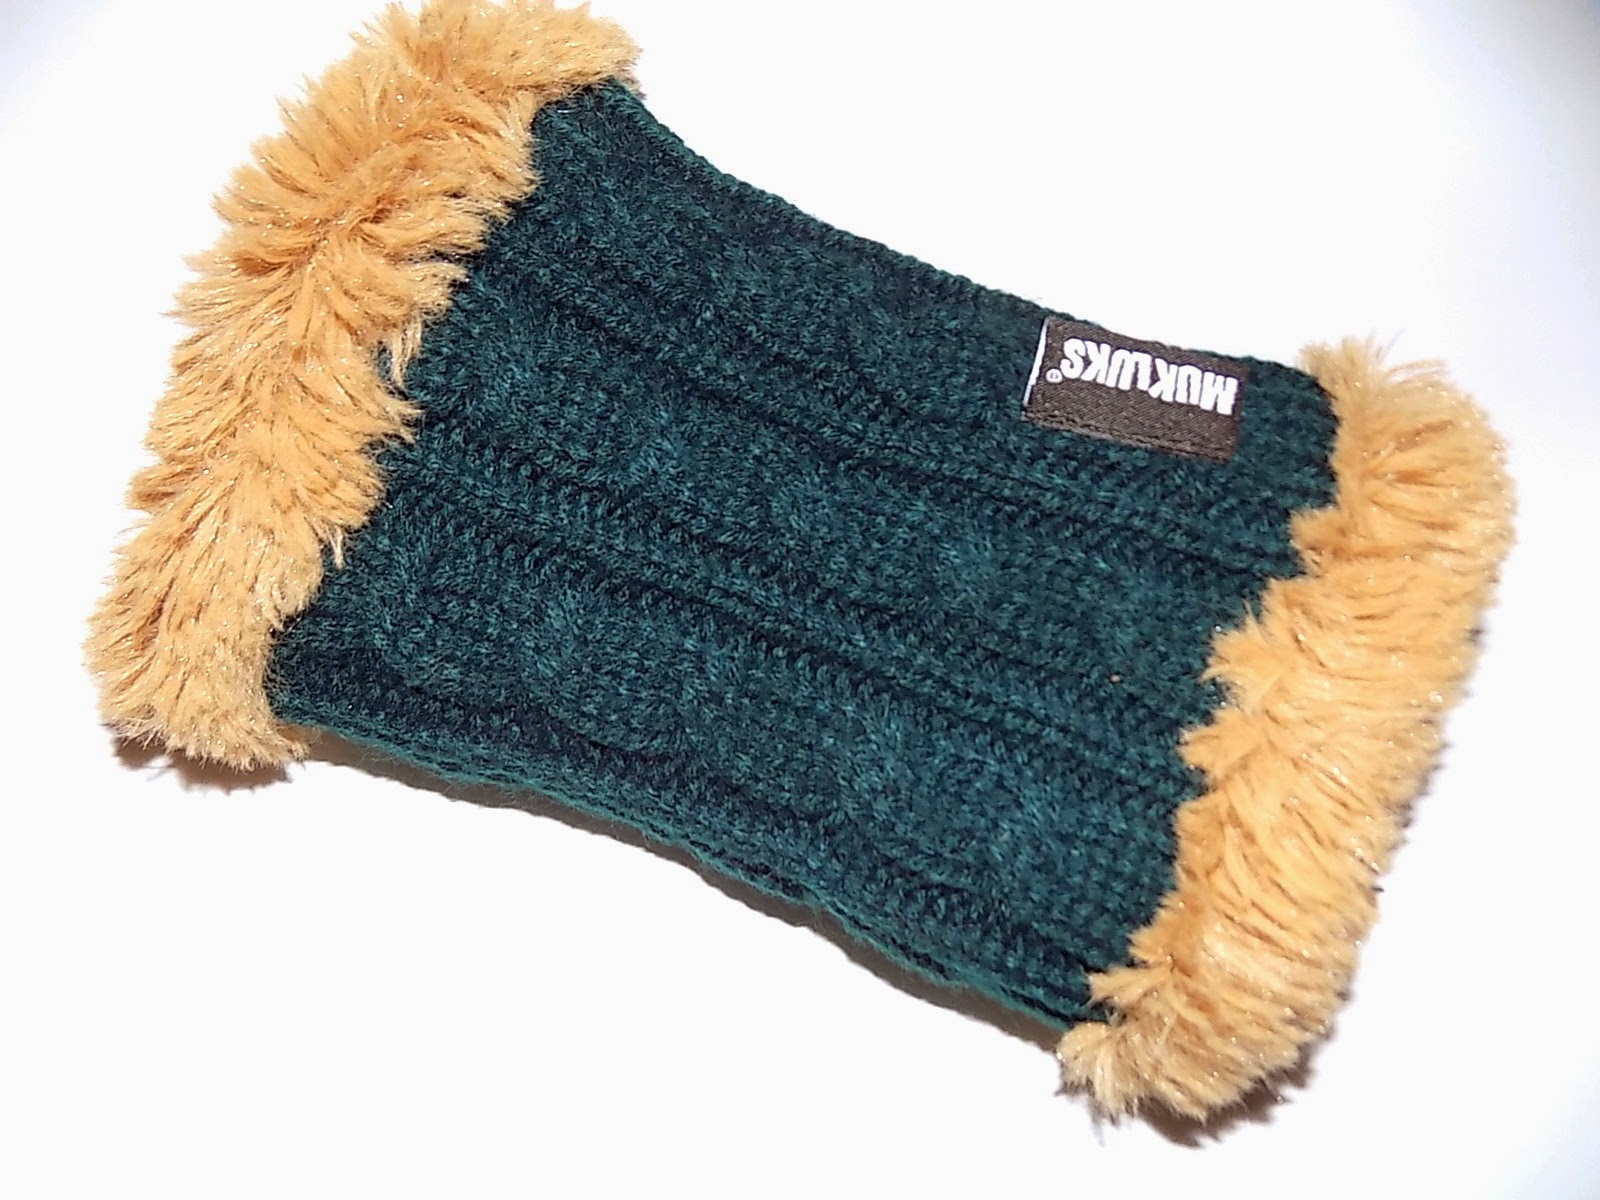 Fingerless gloves at target - These Are Fun And Practical Great For Dog Walking Snow Shoveling Or Just The Target Run